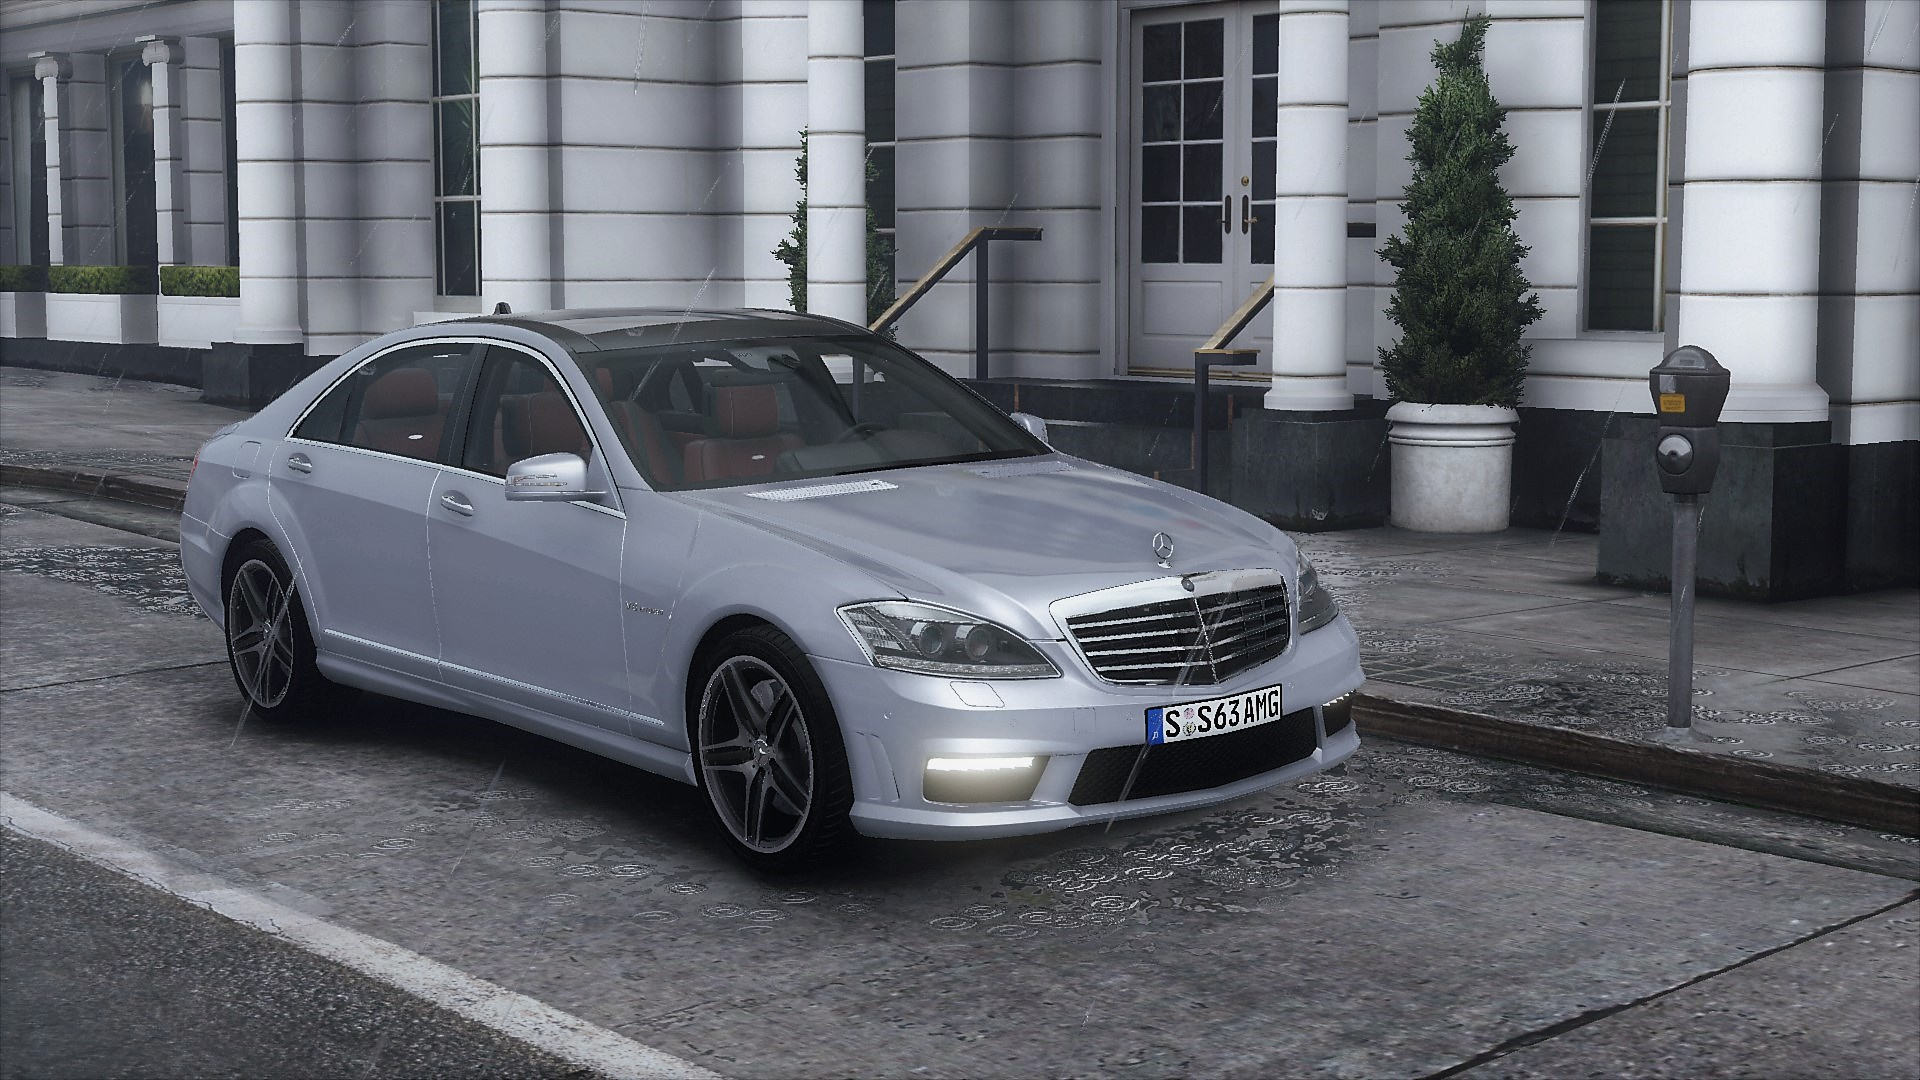 2012 Mercedes Benz S63 AMG W221 [Add